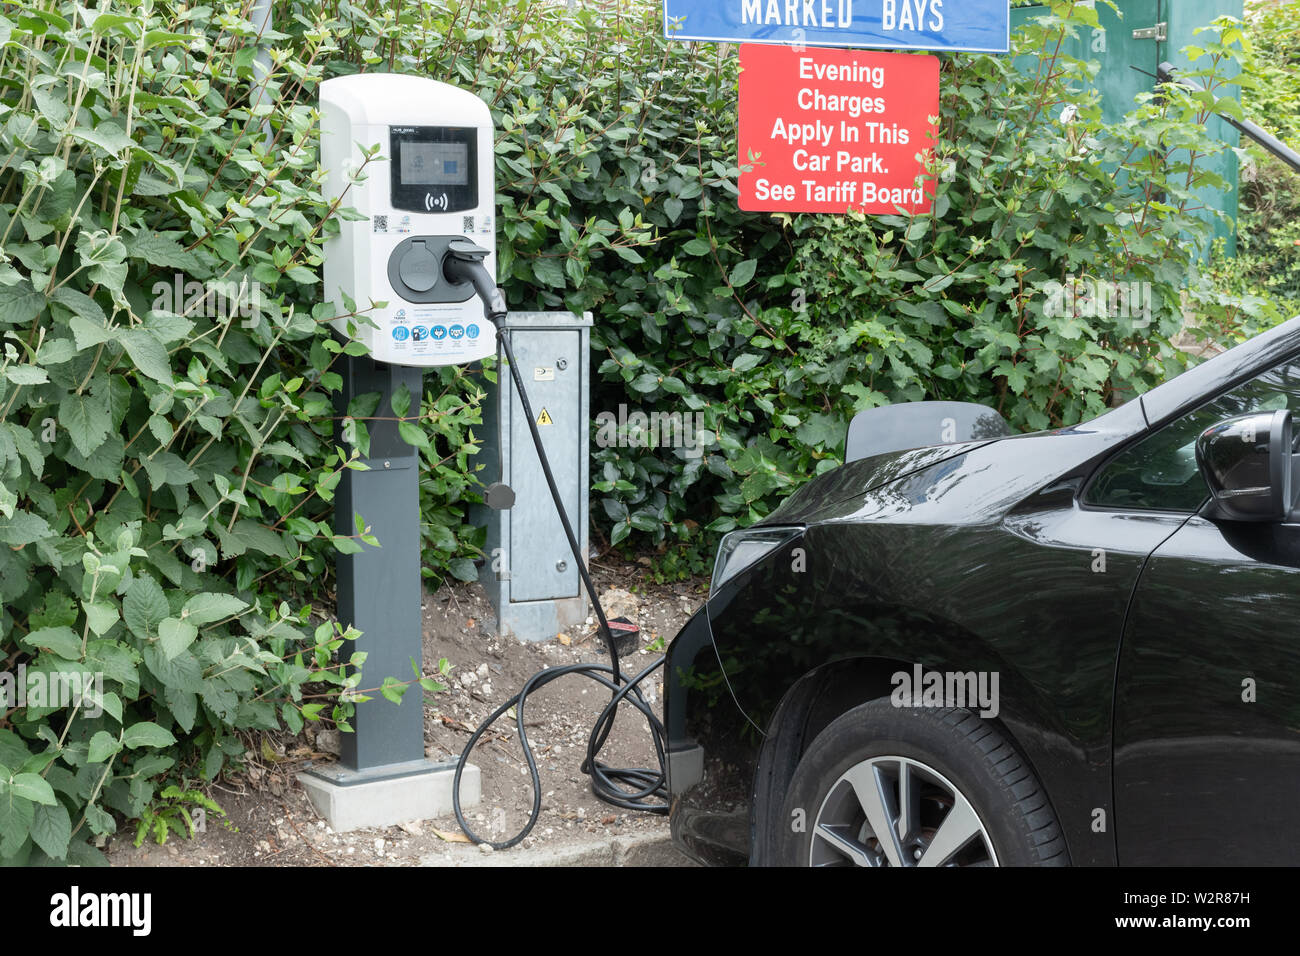 Electric car being charged in a public car park, UK. Electric charging point. Stock Photo